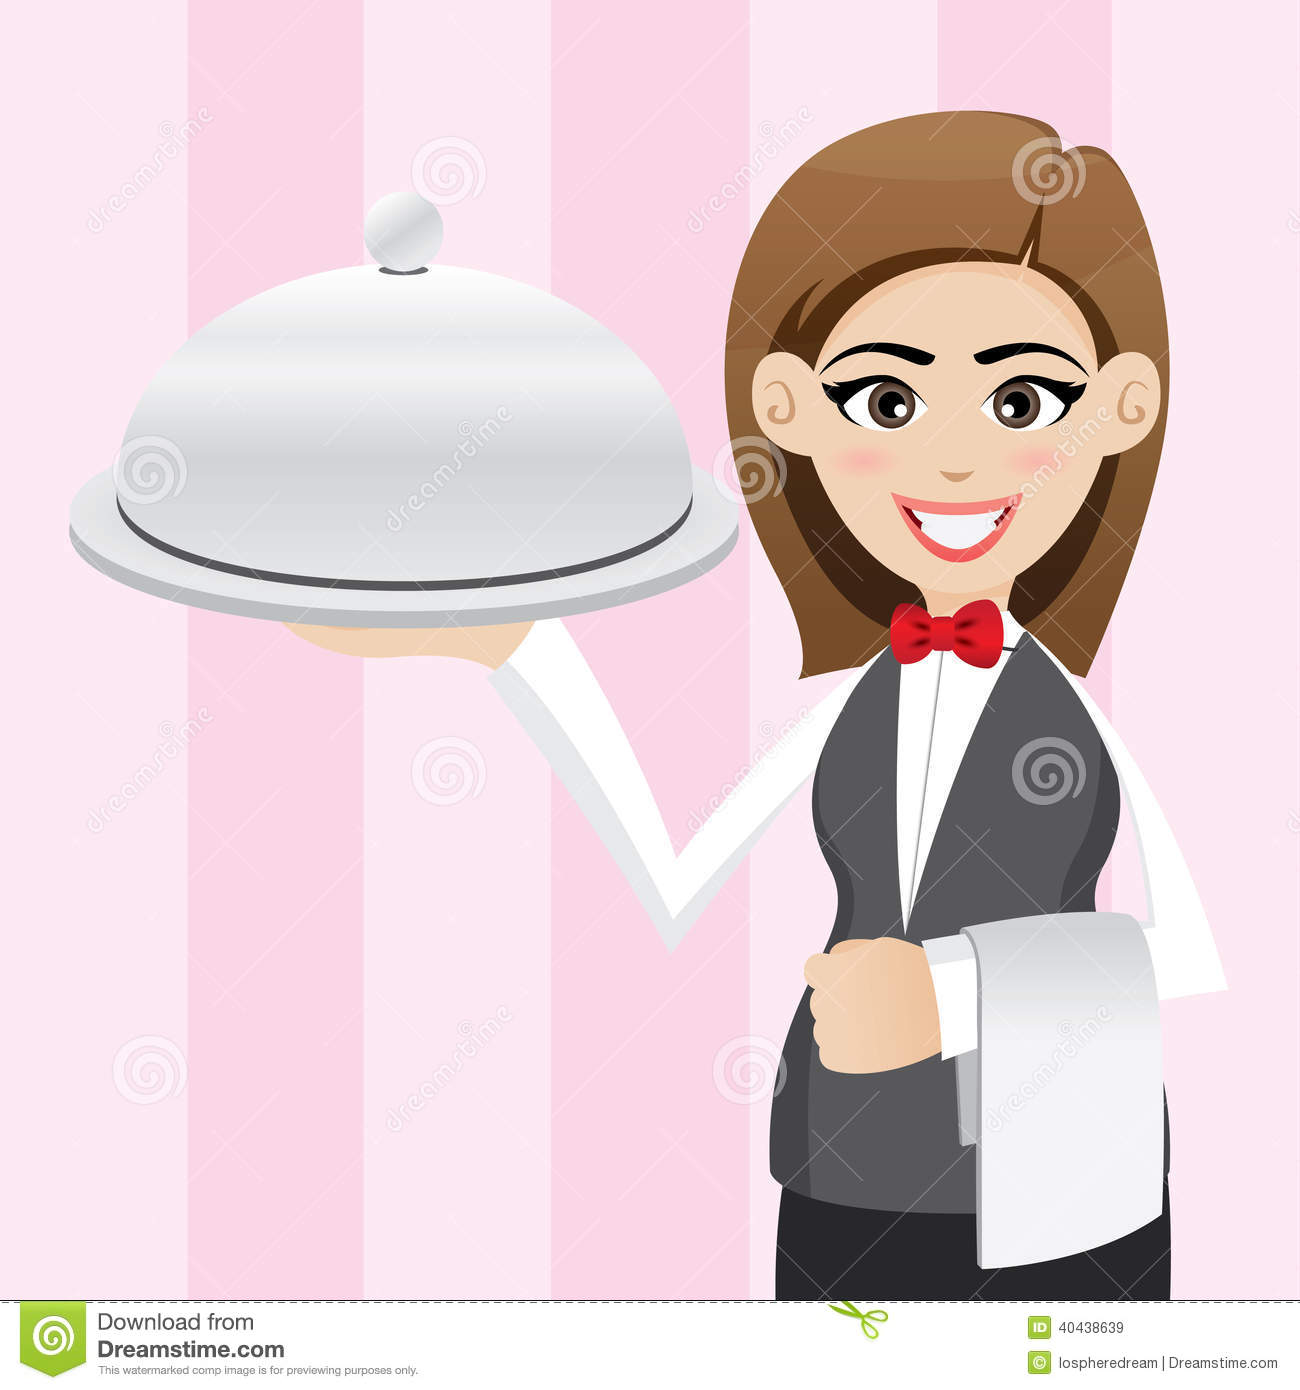 Cartoon Cute Waitress With Food Tray Stock Vector.